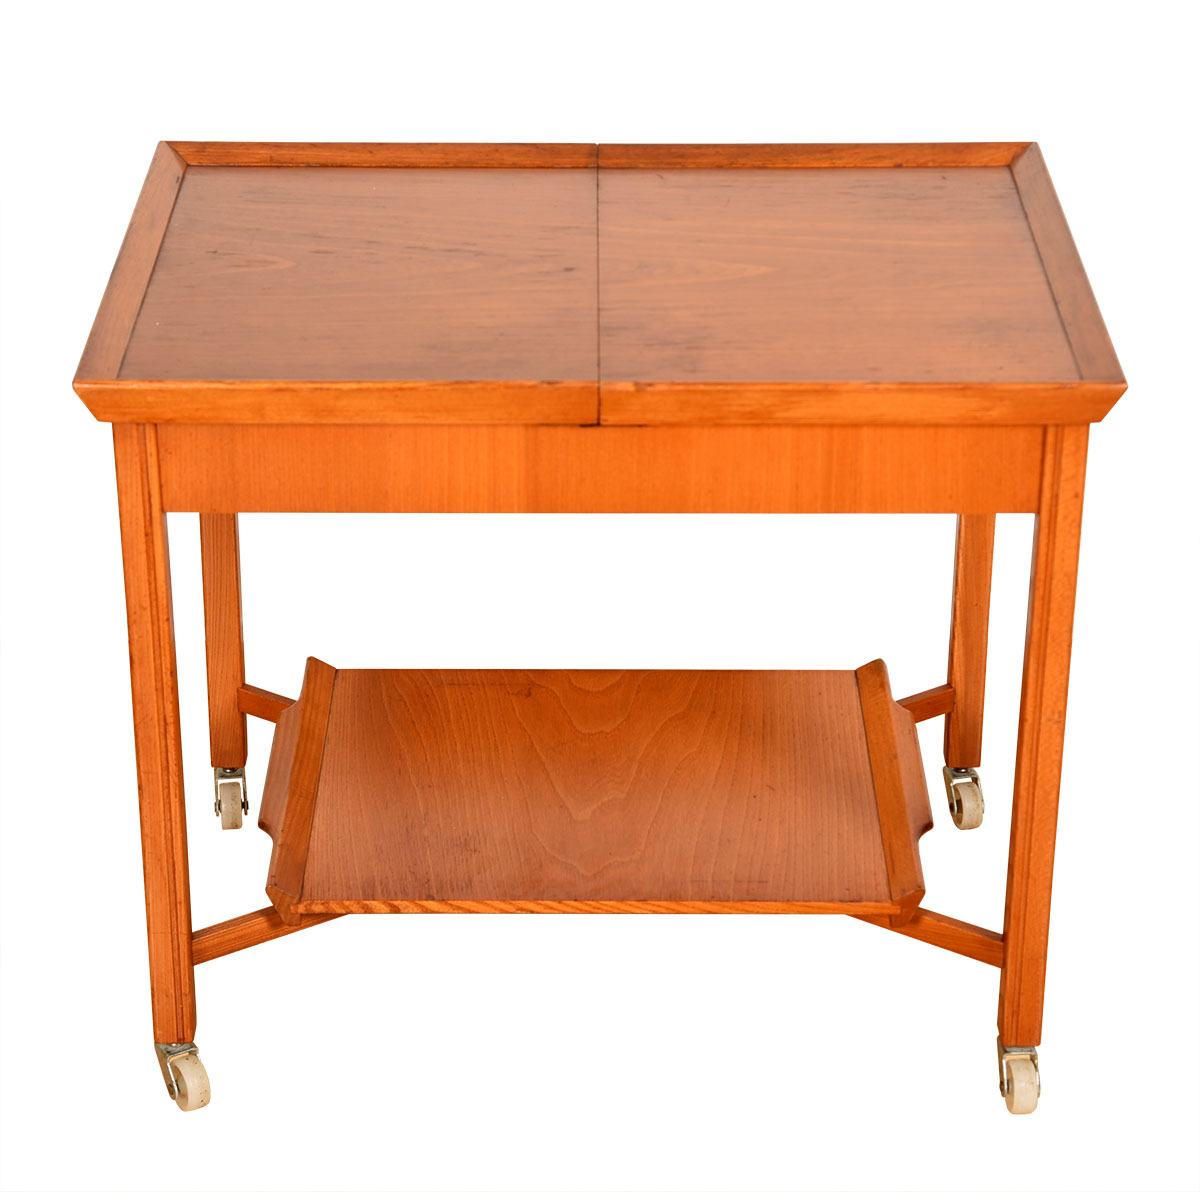 A Swedish Sliding-Top Sewing | Expanding Project Cart